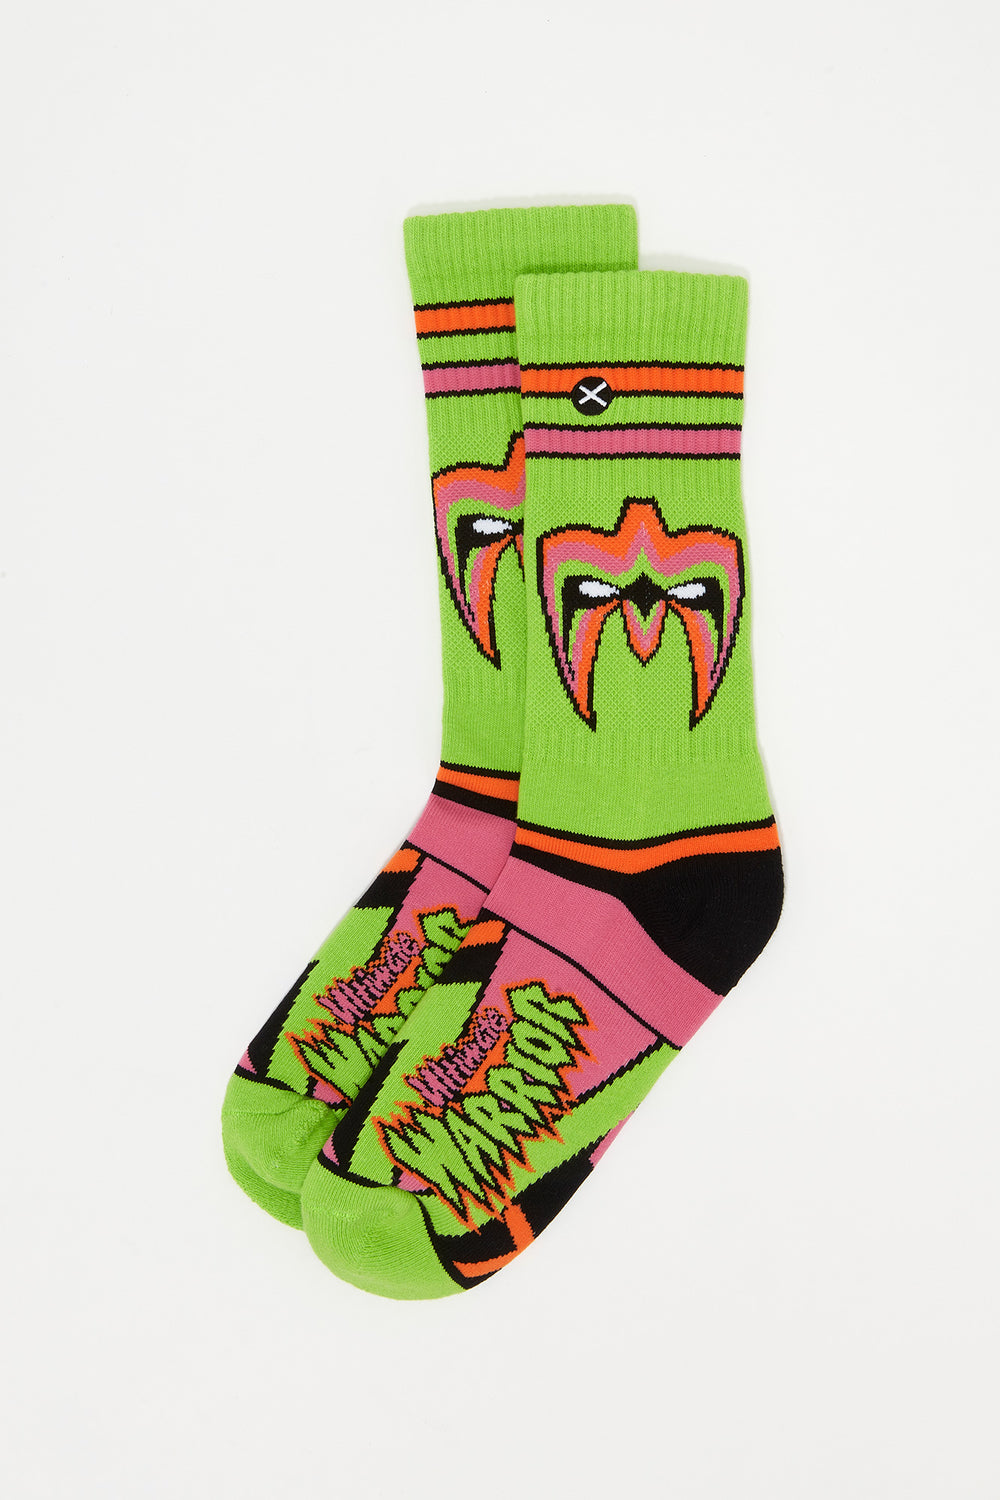 Odd Sox Mens WWF Ultimate Warrior Crew Socks Yellow